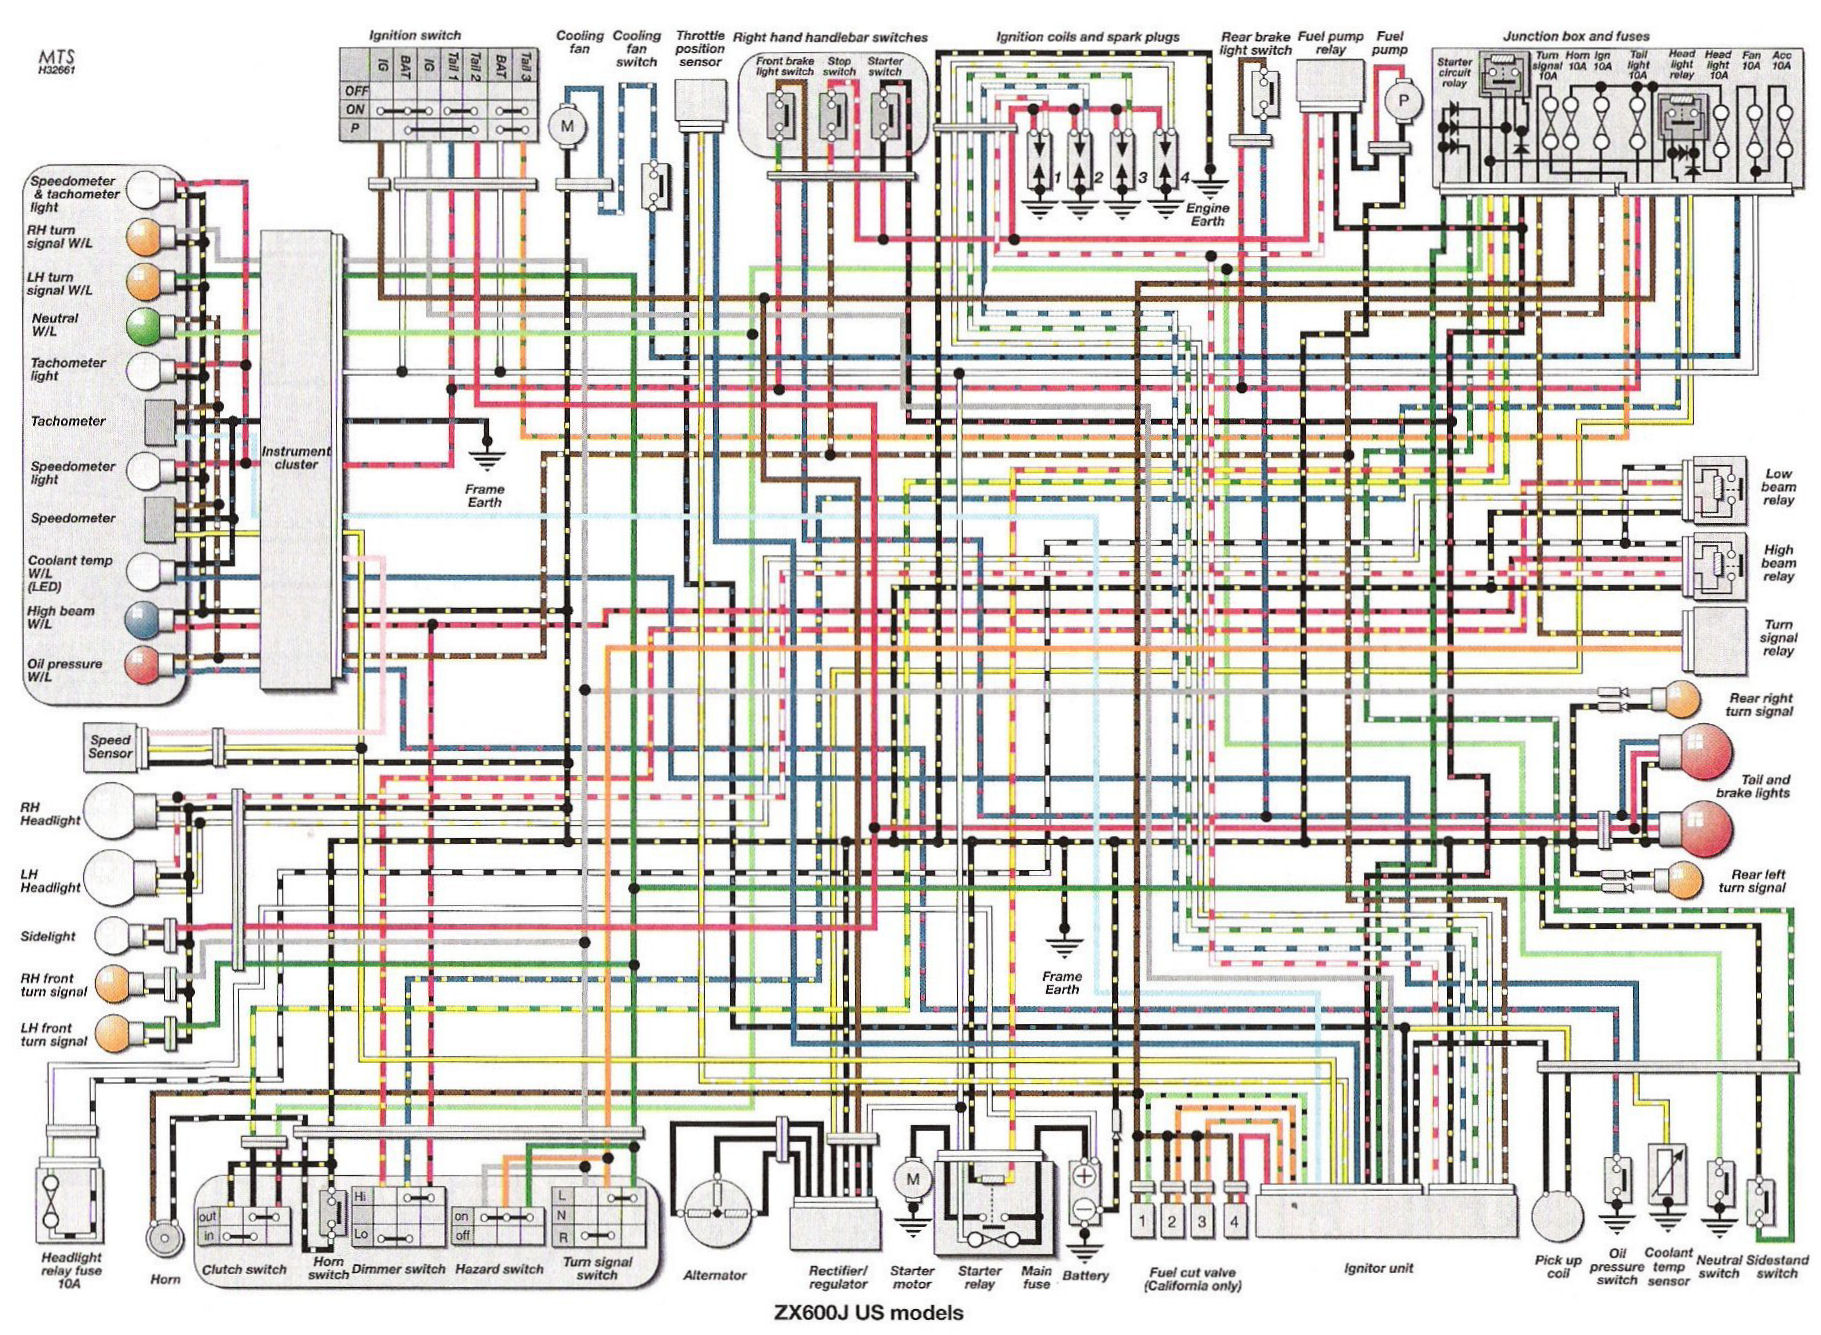 [SCHEMATICS_4US]  DIAGRAM] 2002 Yzf 600 Electrical Wiring Diagram FULL Version HD Quality Wiring  Diagram - ELBOWDIAGRAM.BELLEILMERSION.FR | 2004 R6 Wiring Diagram |  | Diagram Database